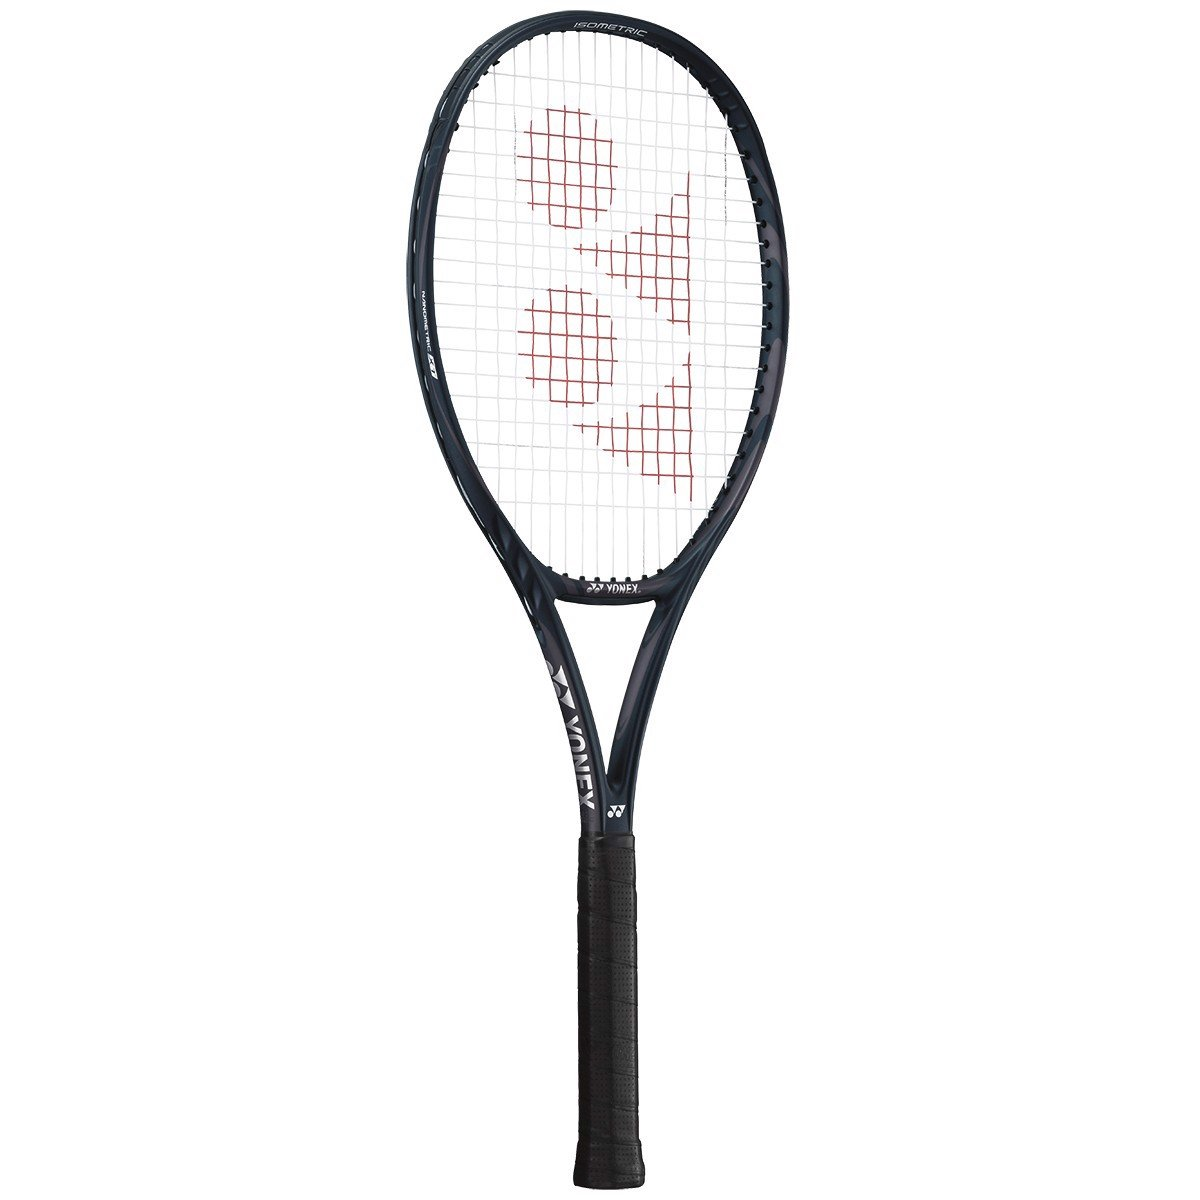 Vợt Tennis Yonex VCORE 98LG 285gram Galaxy Black 2019-Made in Japan (133VC98LN)